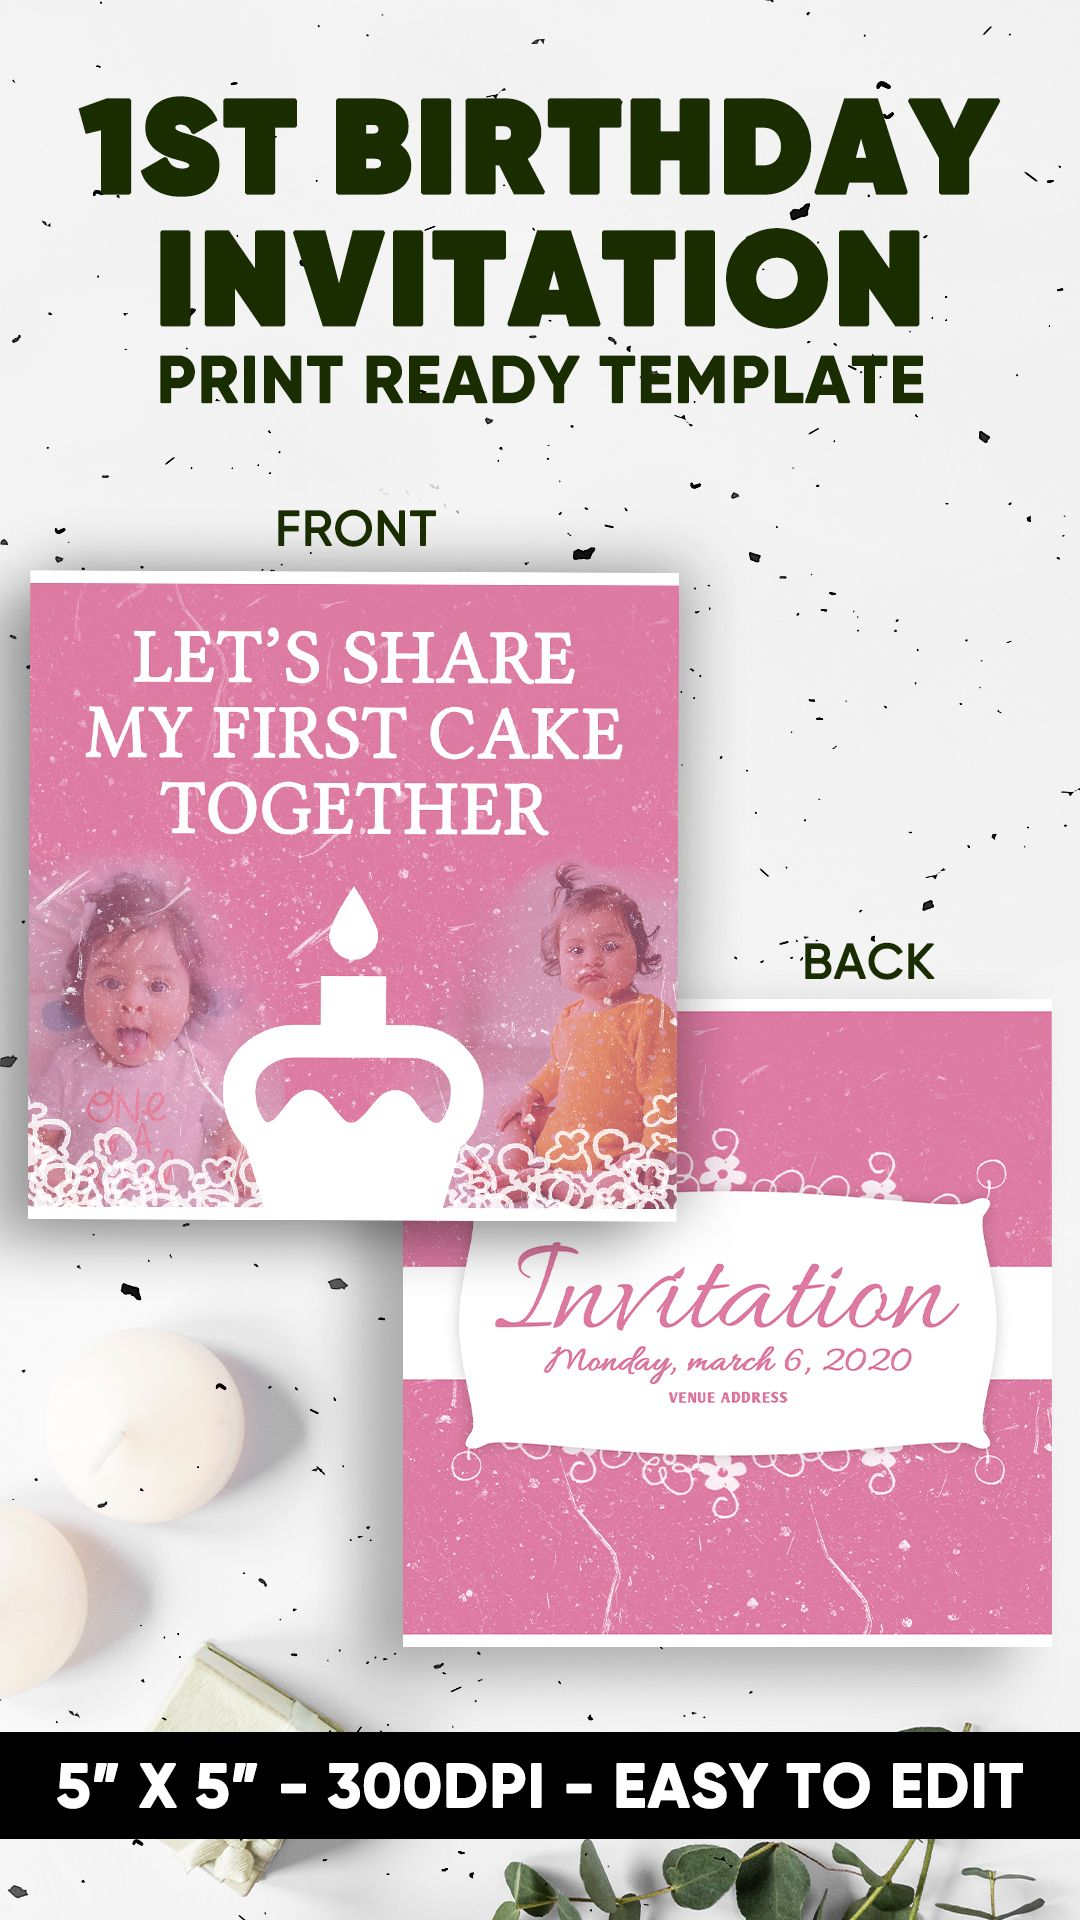 1st Birthday 5 X5 Invitation Template Card Instant Download Online Editing Print Ready 1st Birthday Invitations 1st Birthday Invitation Printing